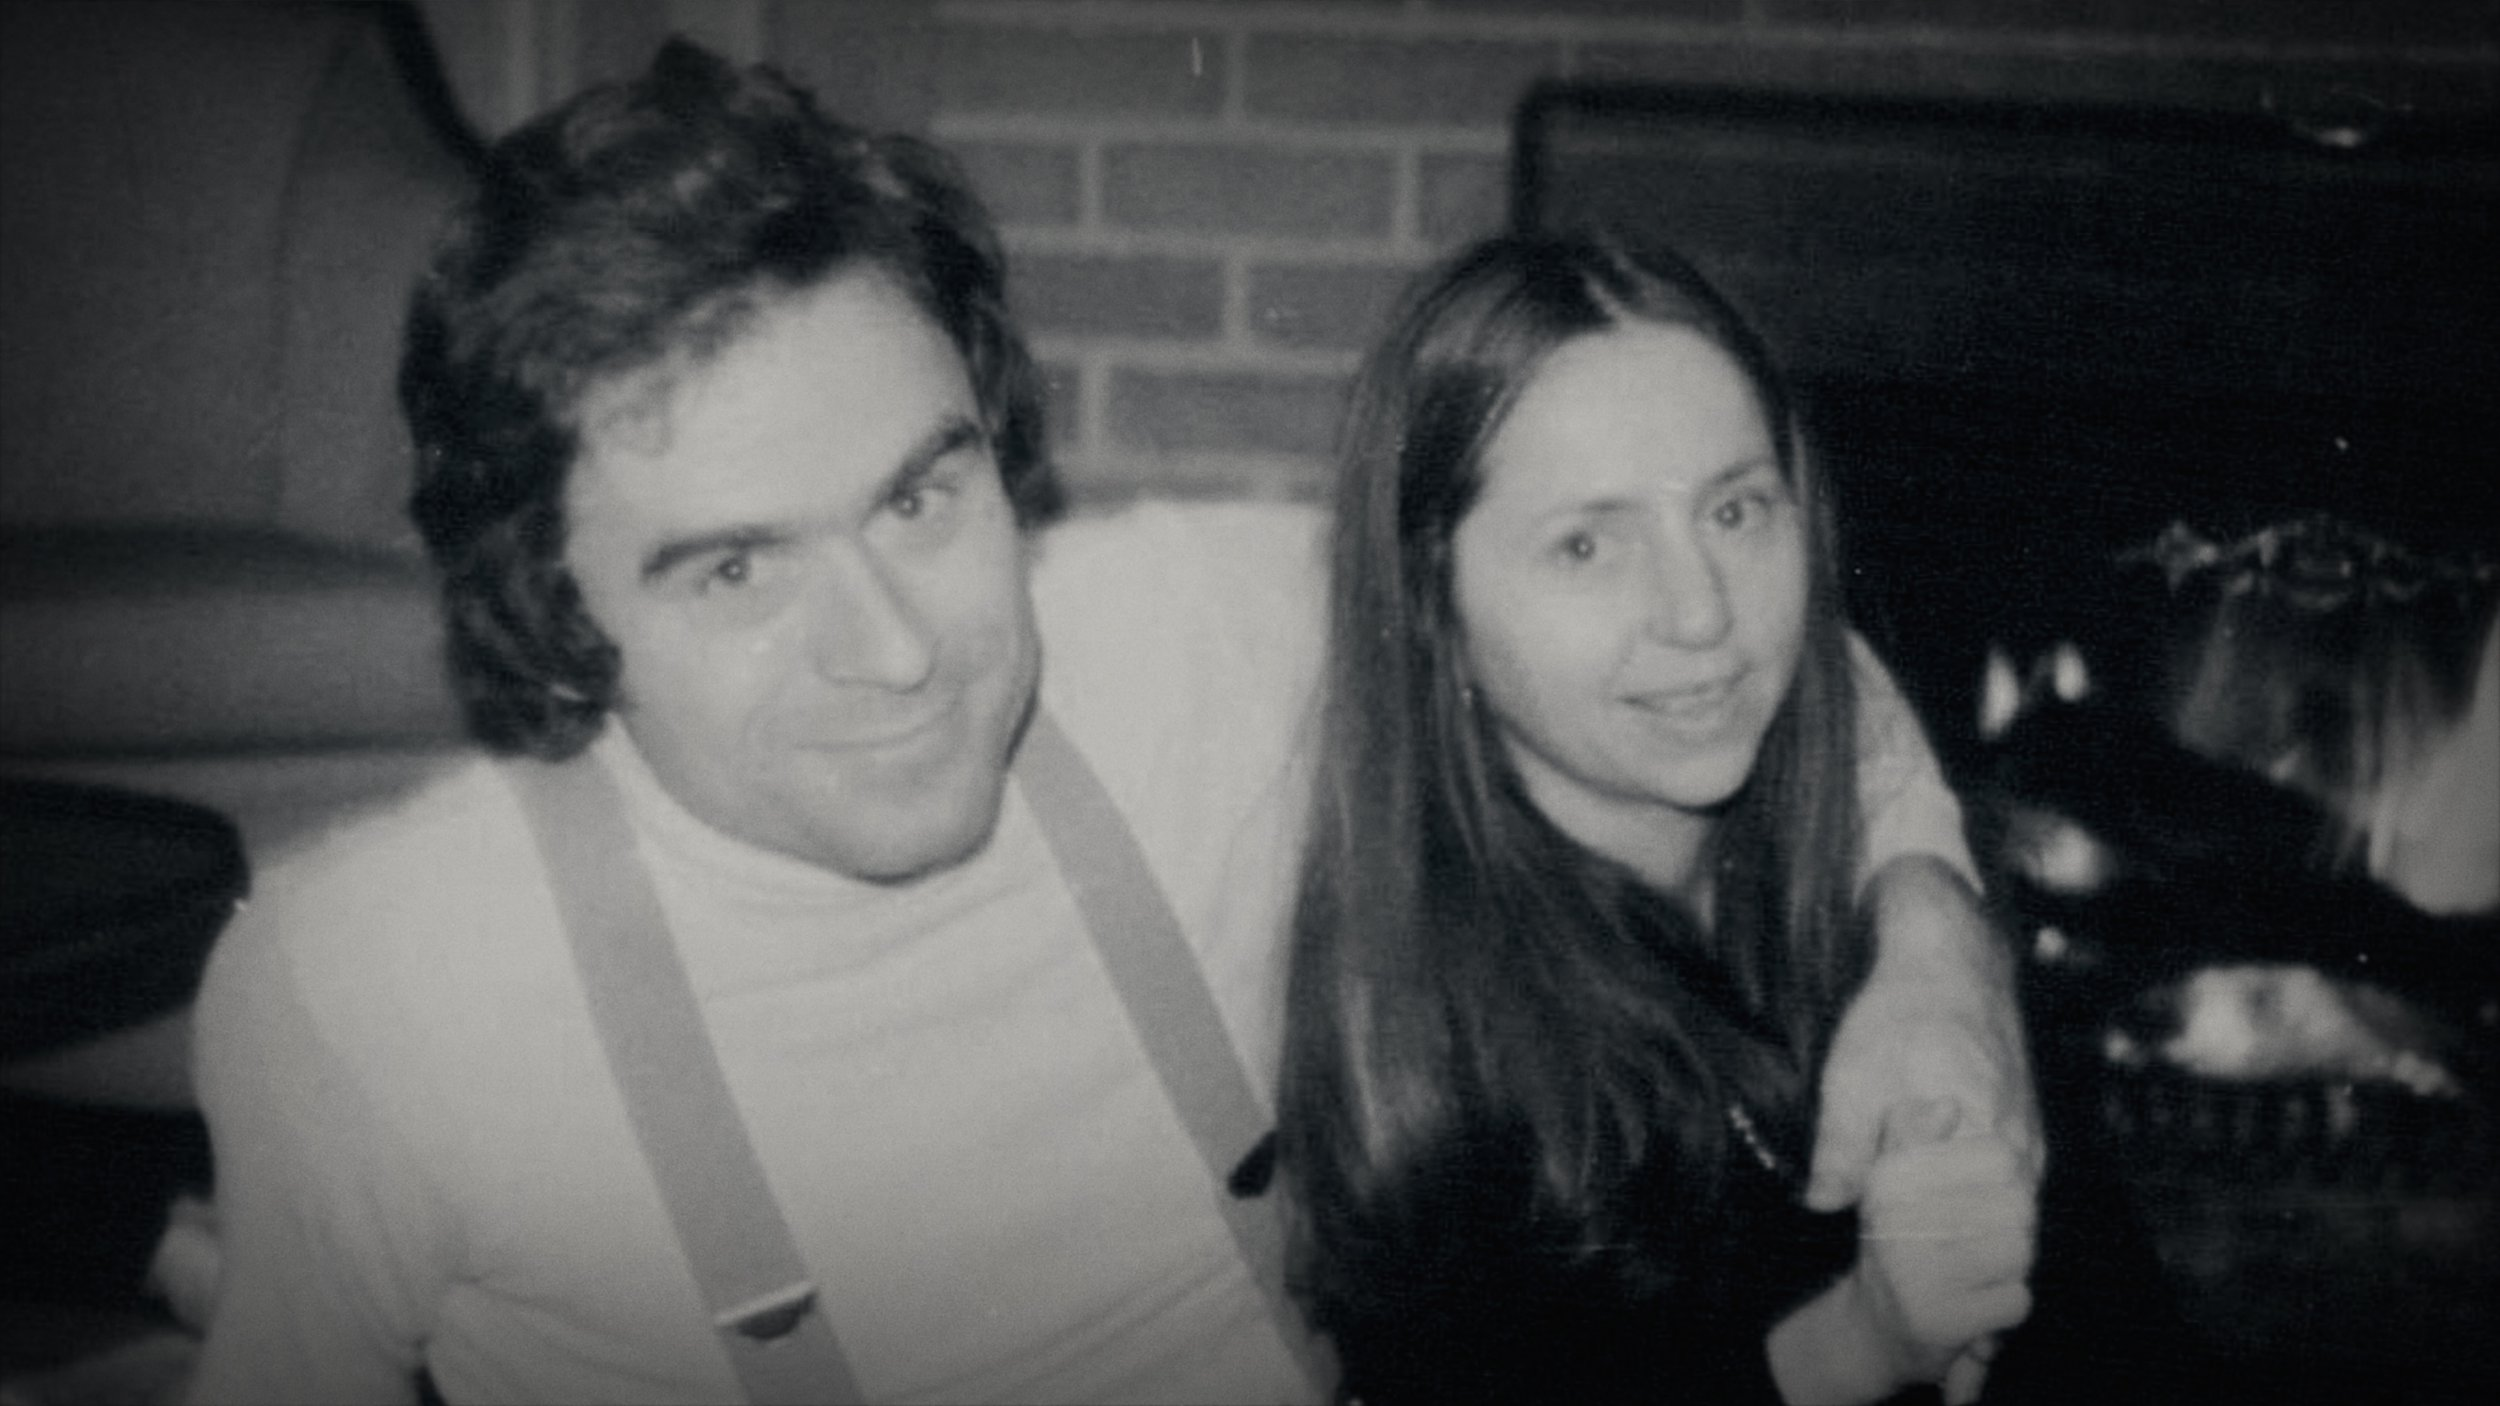 Who was Elizabeth Kloepfer, Ted Bundy's girlfriend, and where is she now?